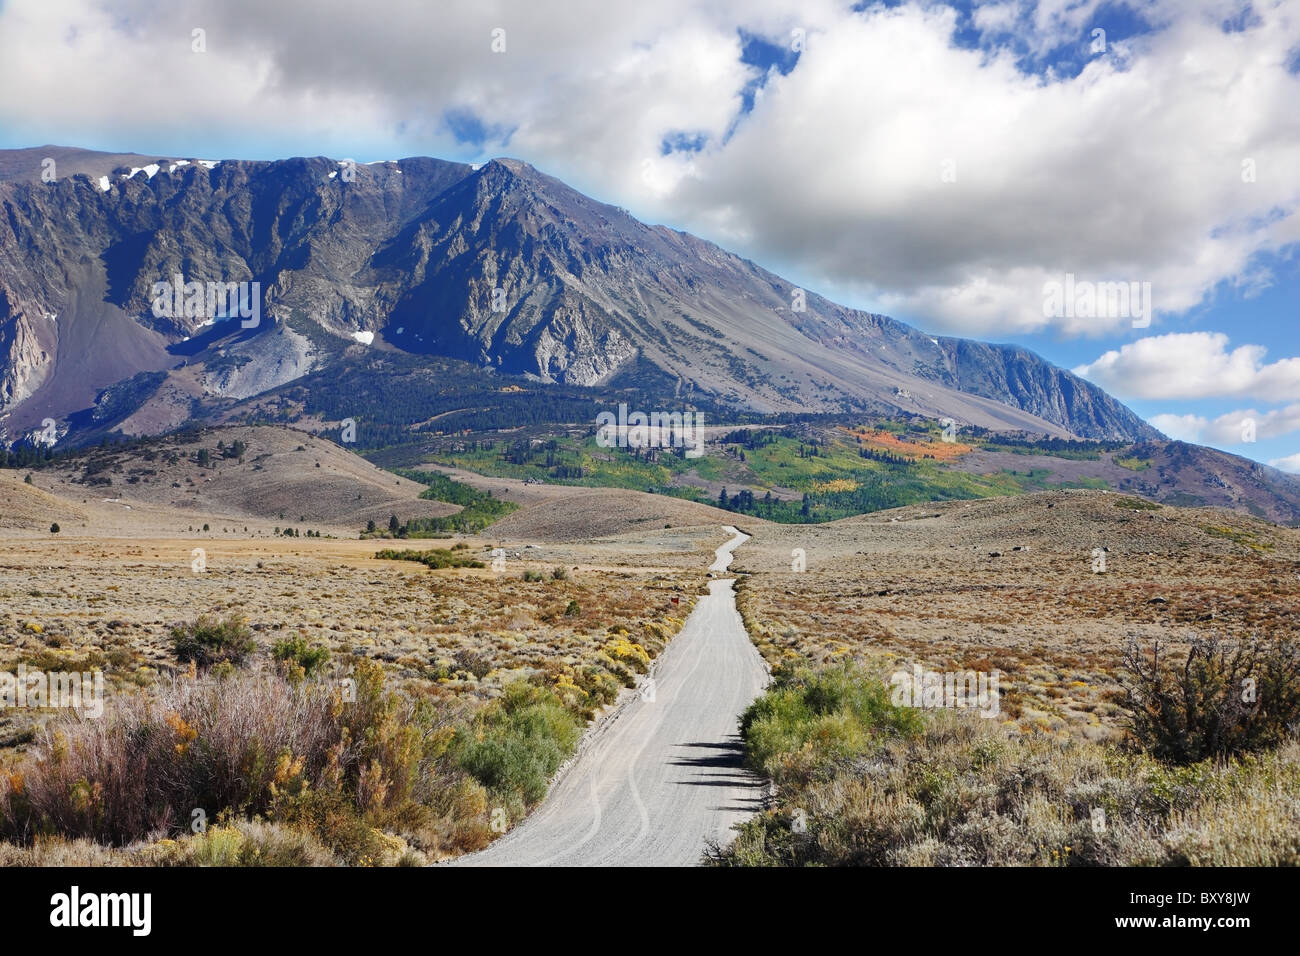 The narrow asphalt road in the picturesque blooming steppe to the distant mountains - Stock Image